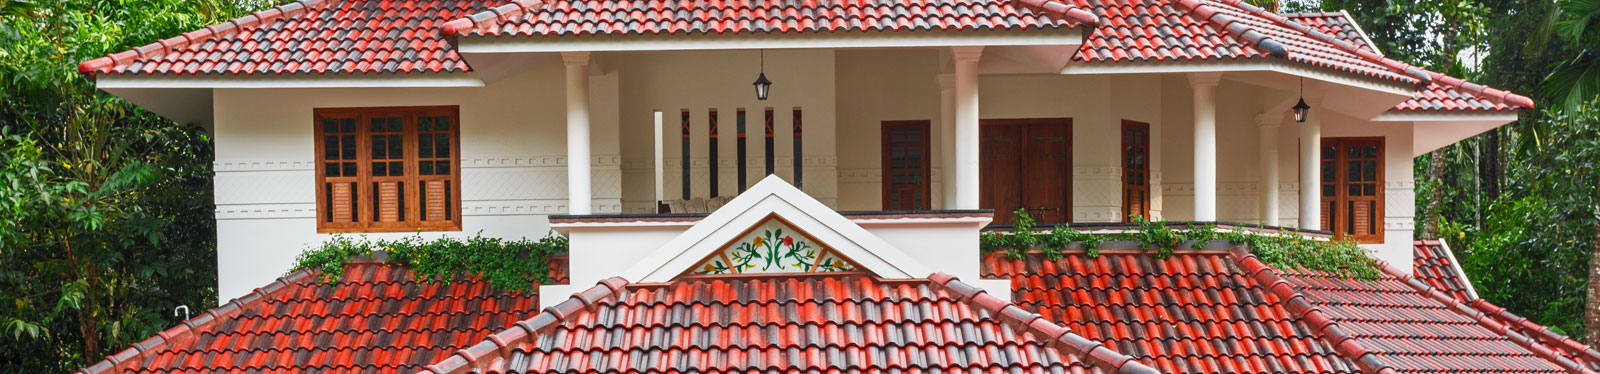 pionnier roofing solutions roof tiles